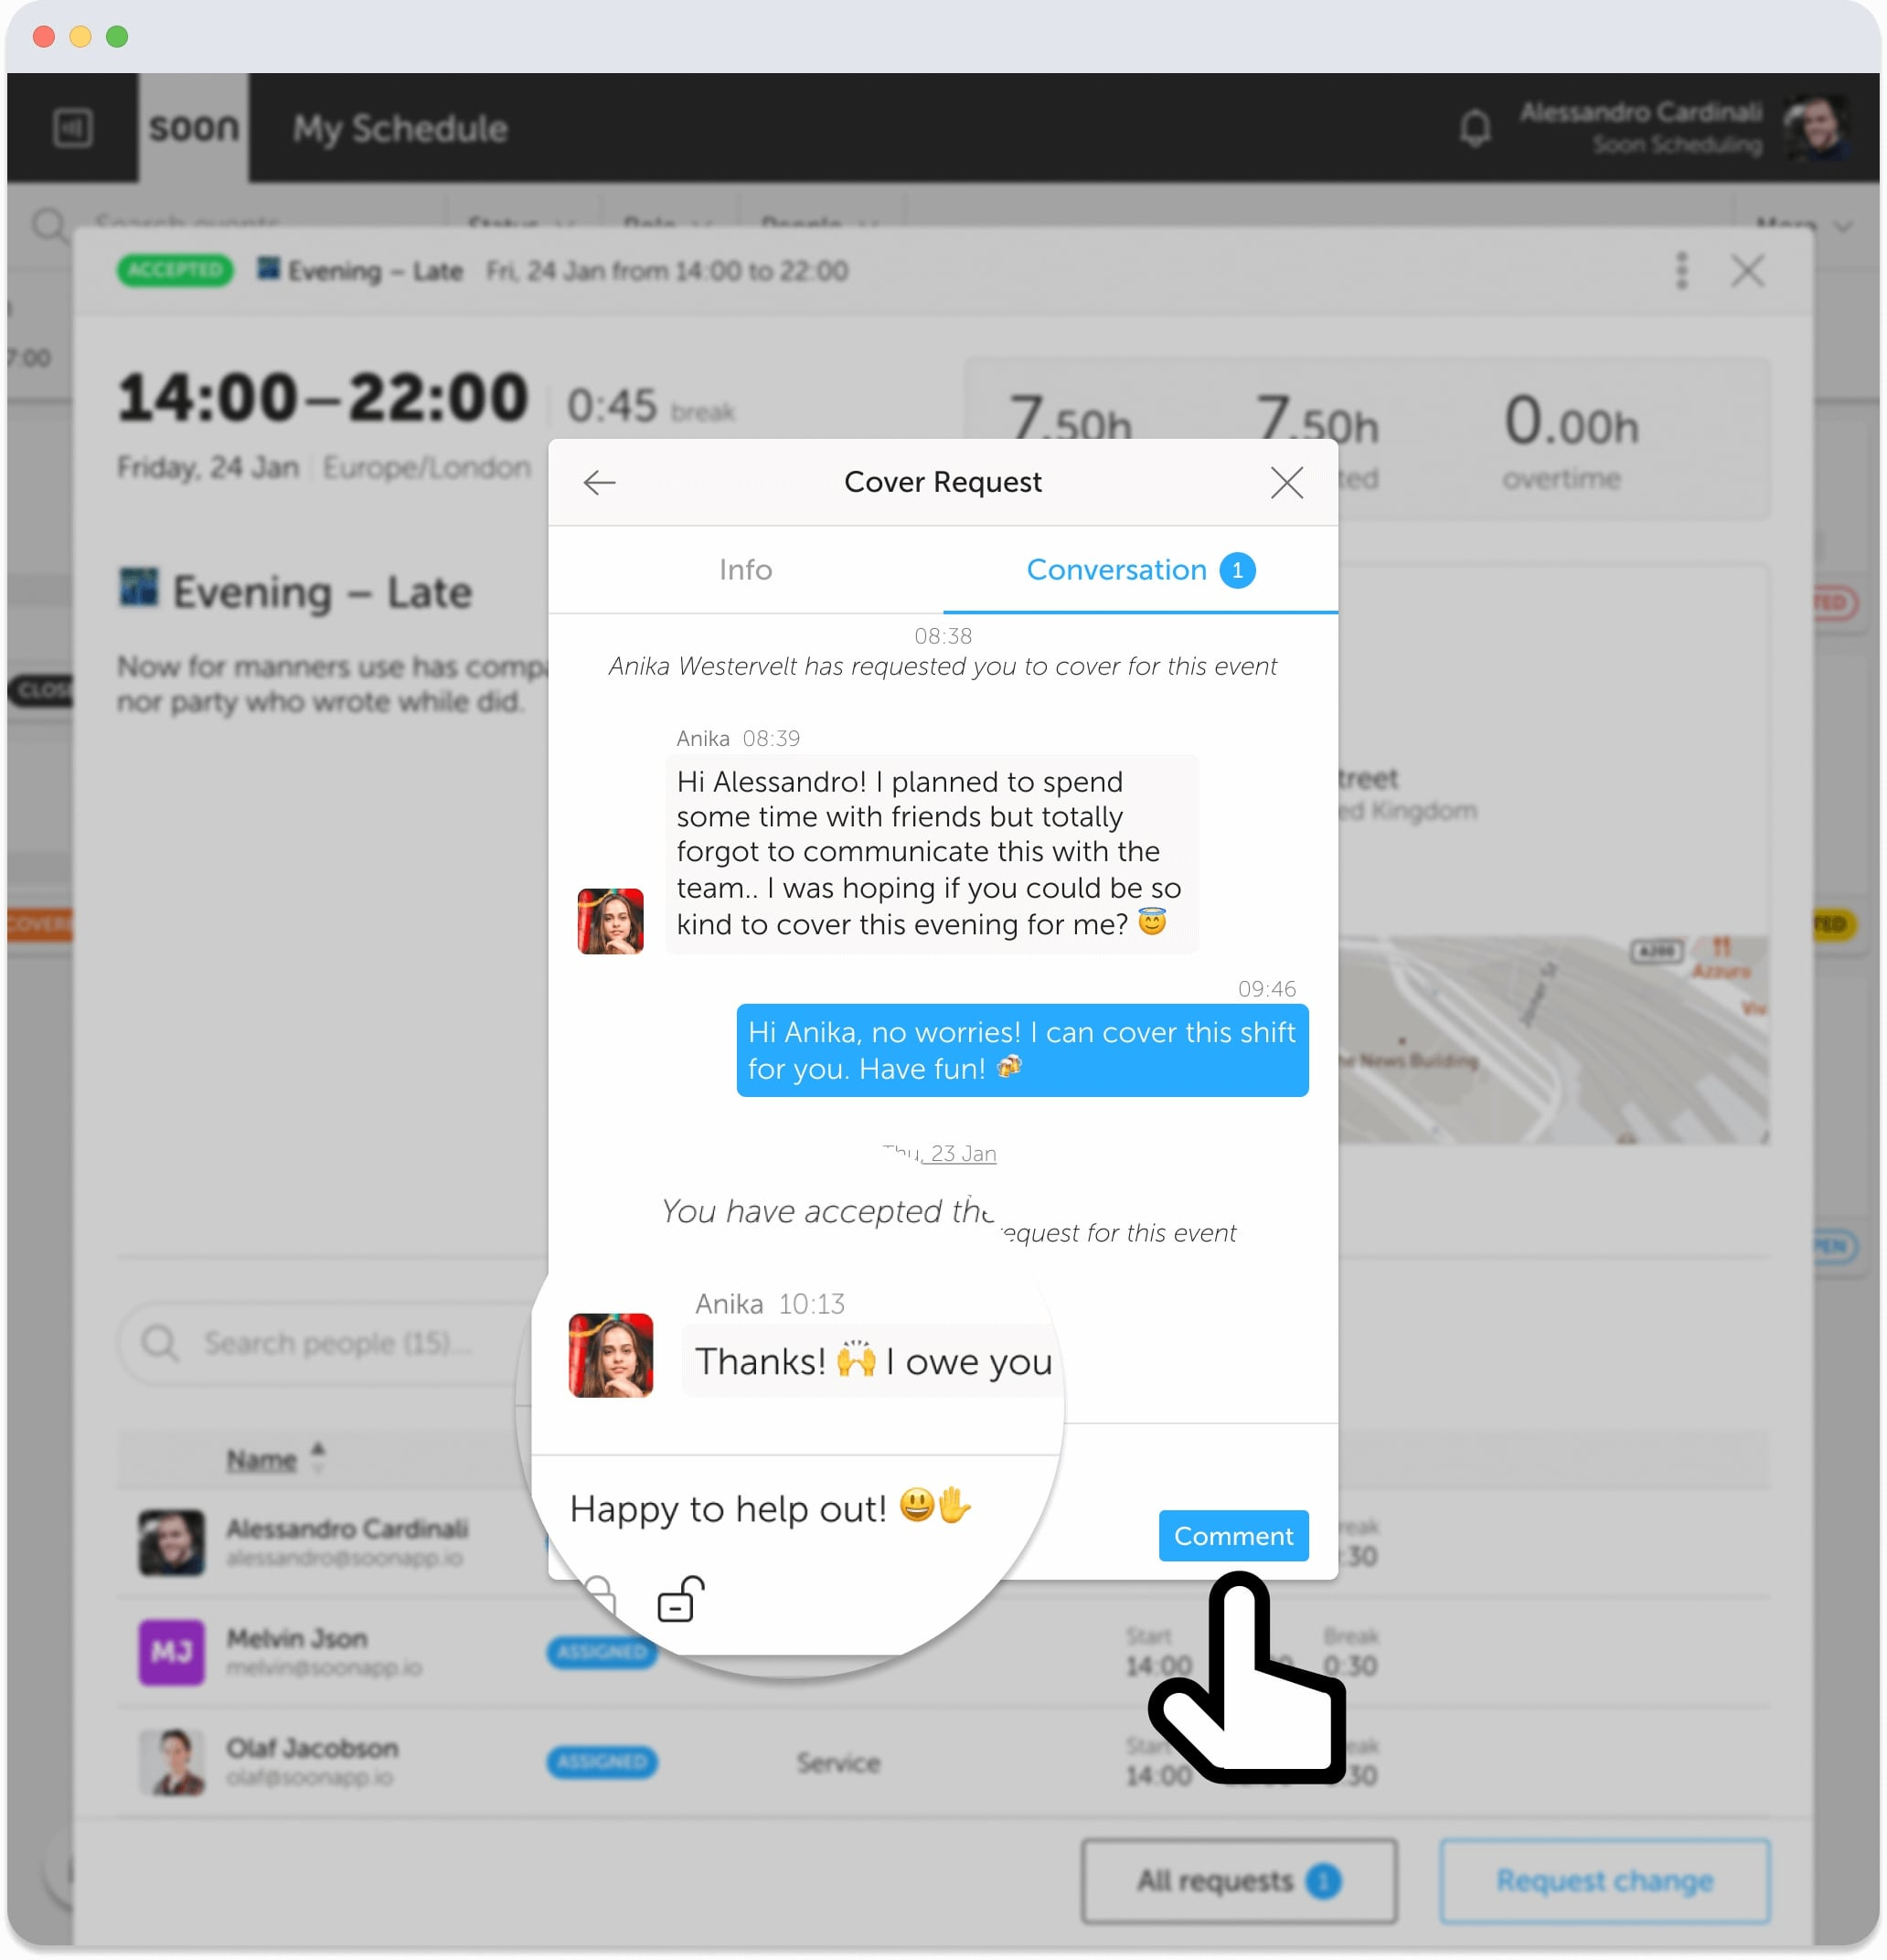 Soon shift change request showing a conversation